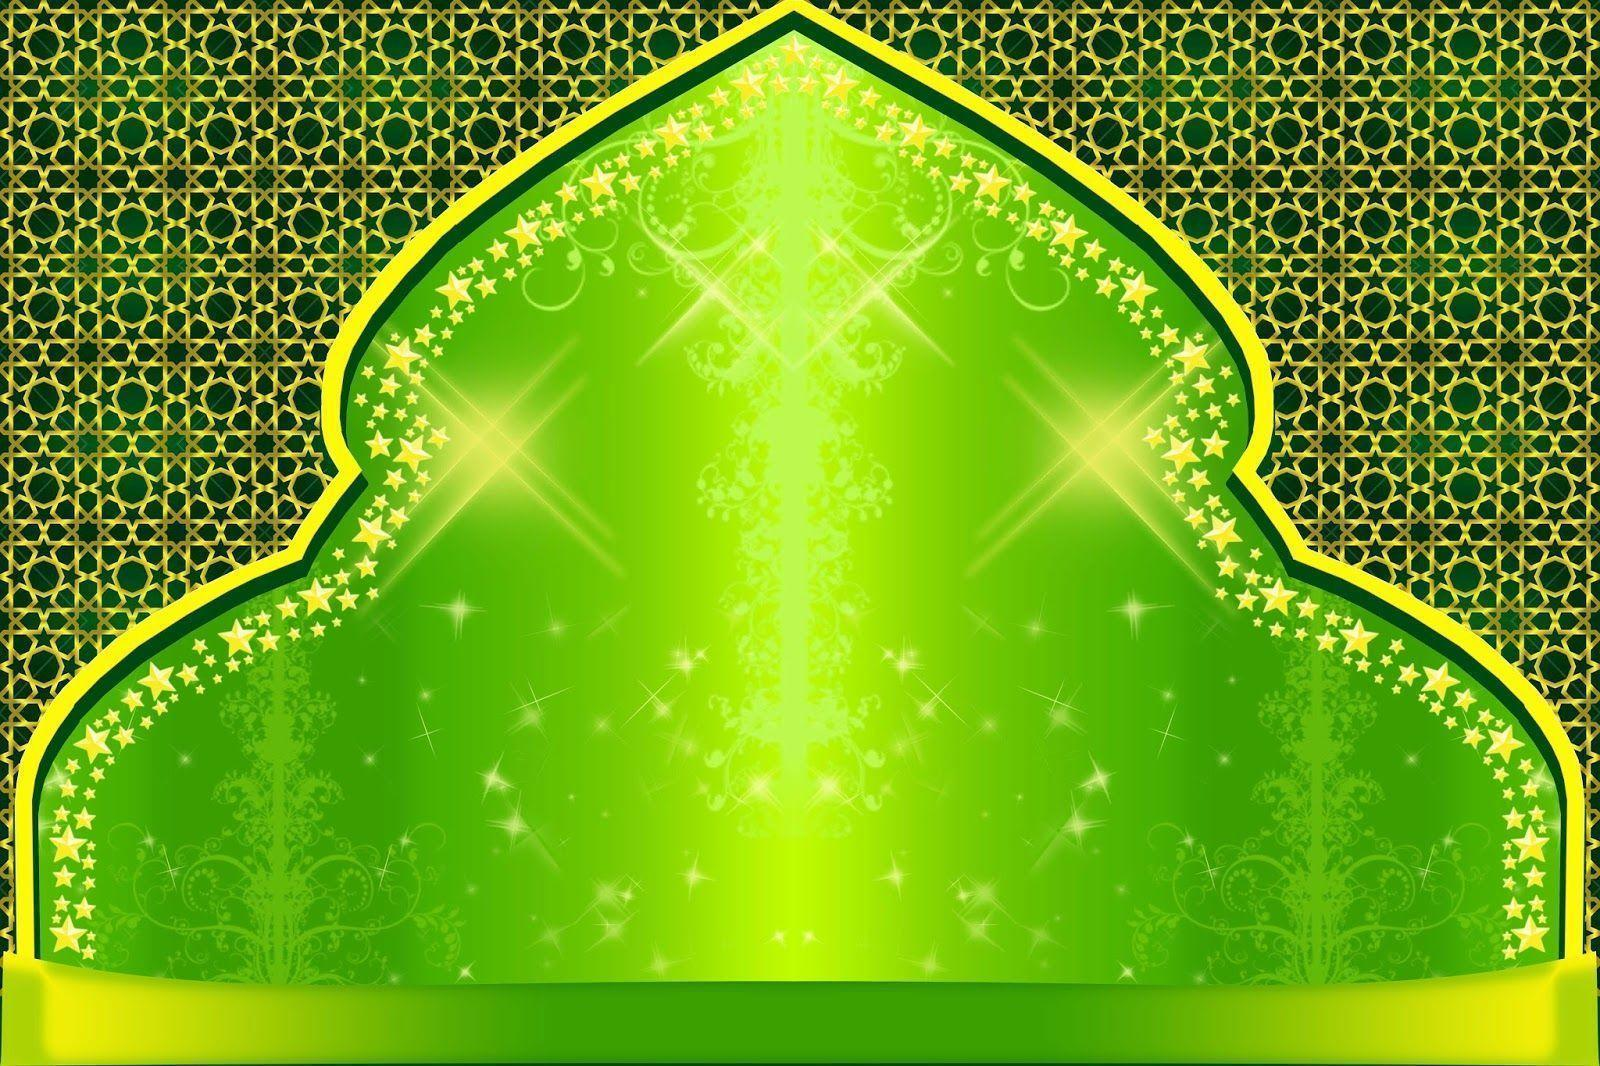 Islamic backgrounds pictures wallpaper cave - Islamic background wallpaper ...